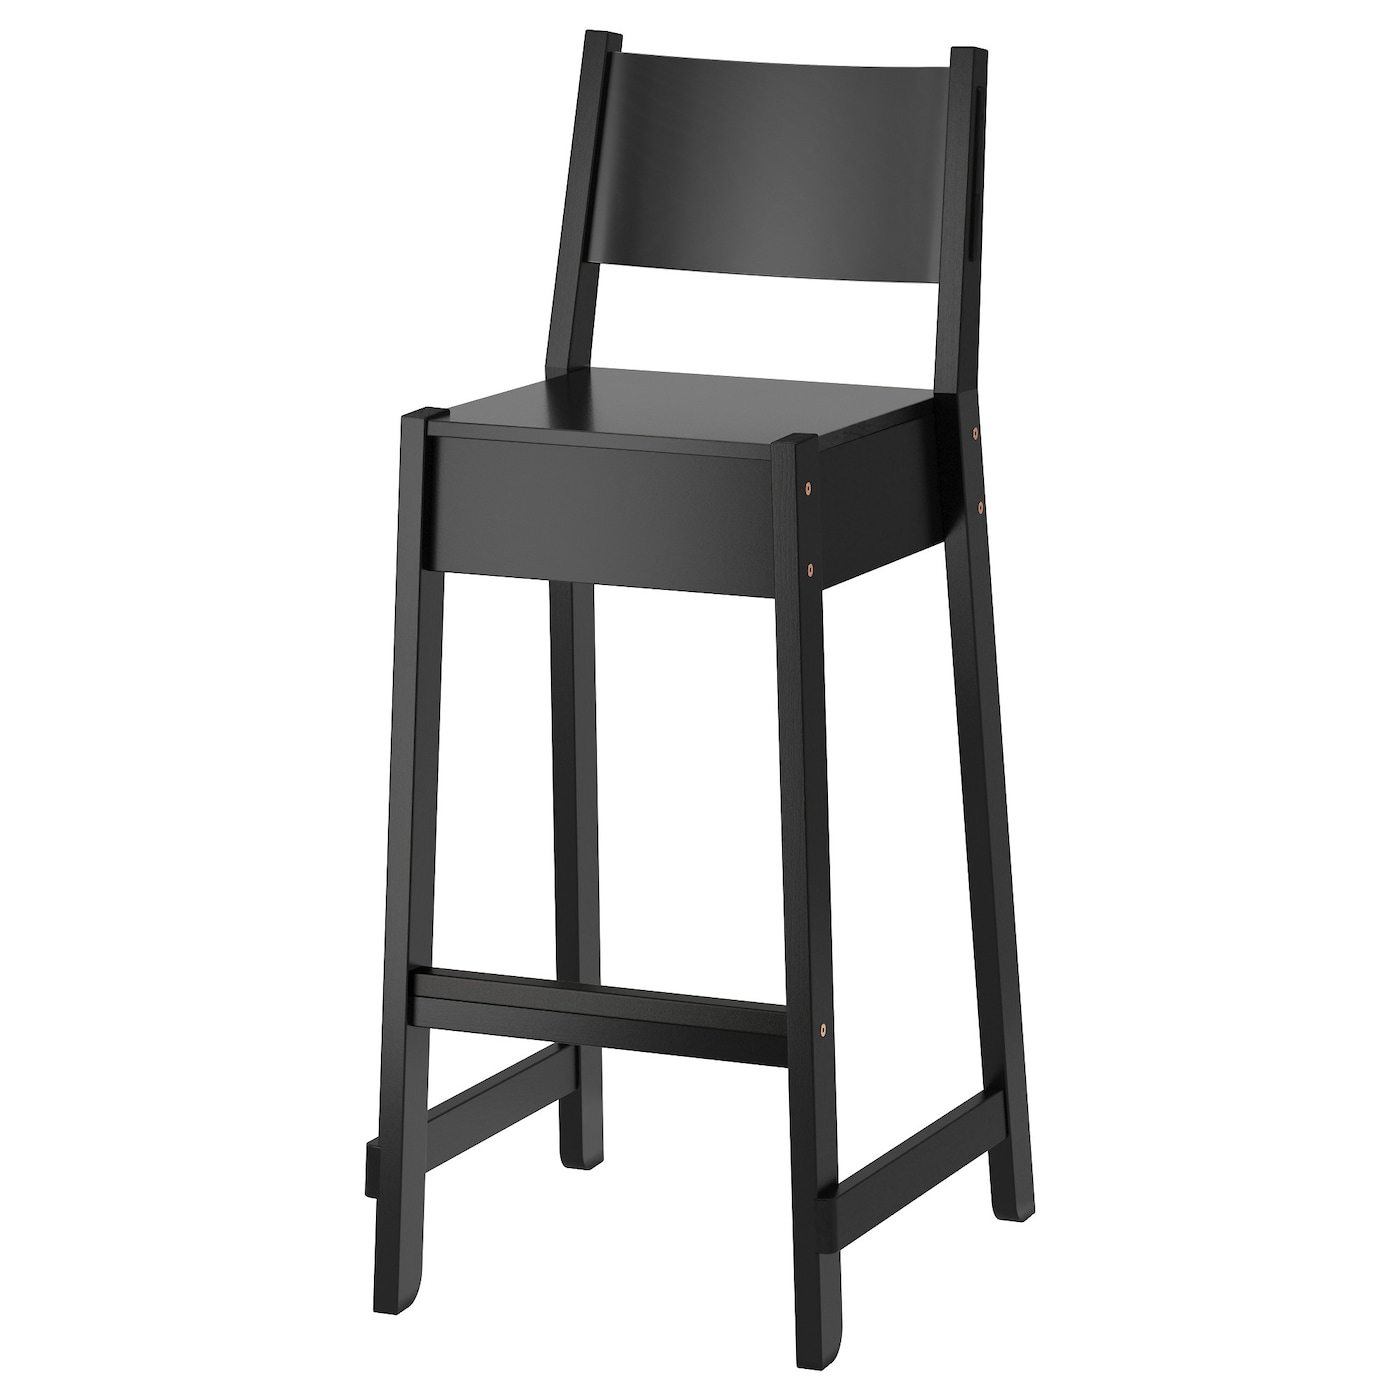 Bar Seating amp Caf233 Seating IKEA : norrC3A5ker bar stool with backrest black0518762pe641228s5 from www.ikea.com size 2000 x 2000 jpeg 169kB